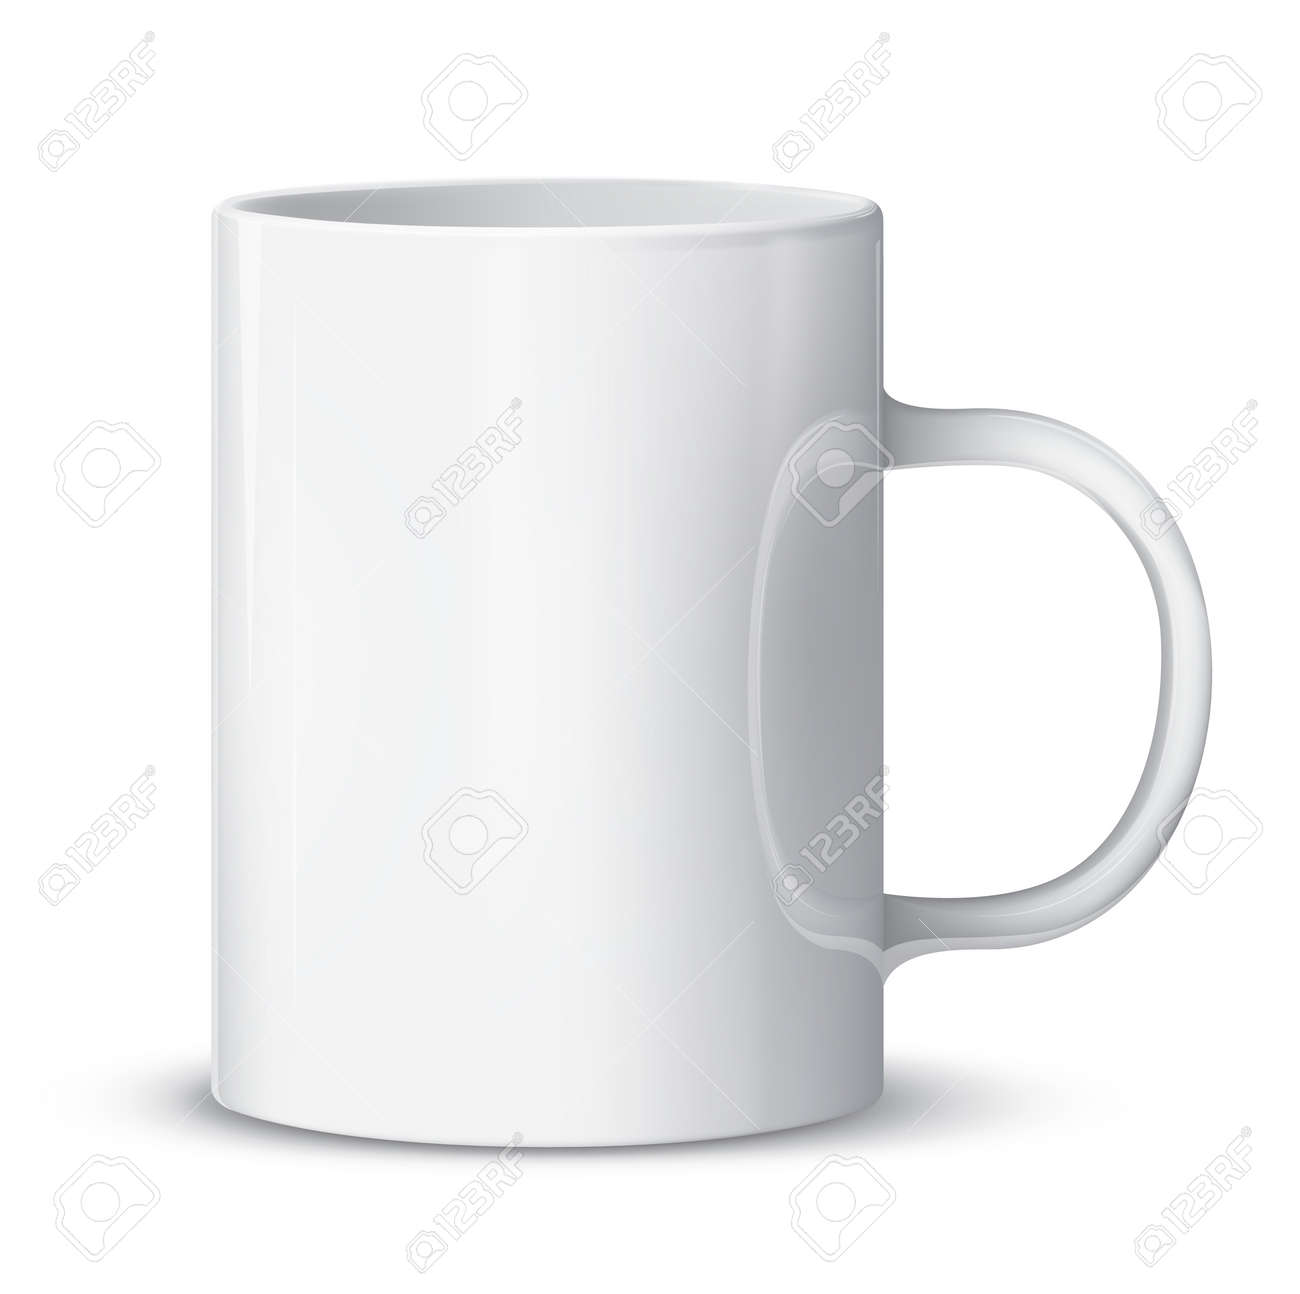 Realistic white cup isolated on white. Stock Vector - 15586073